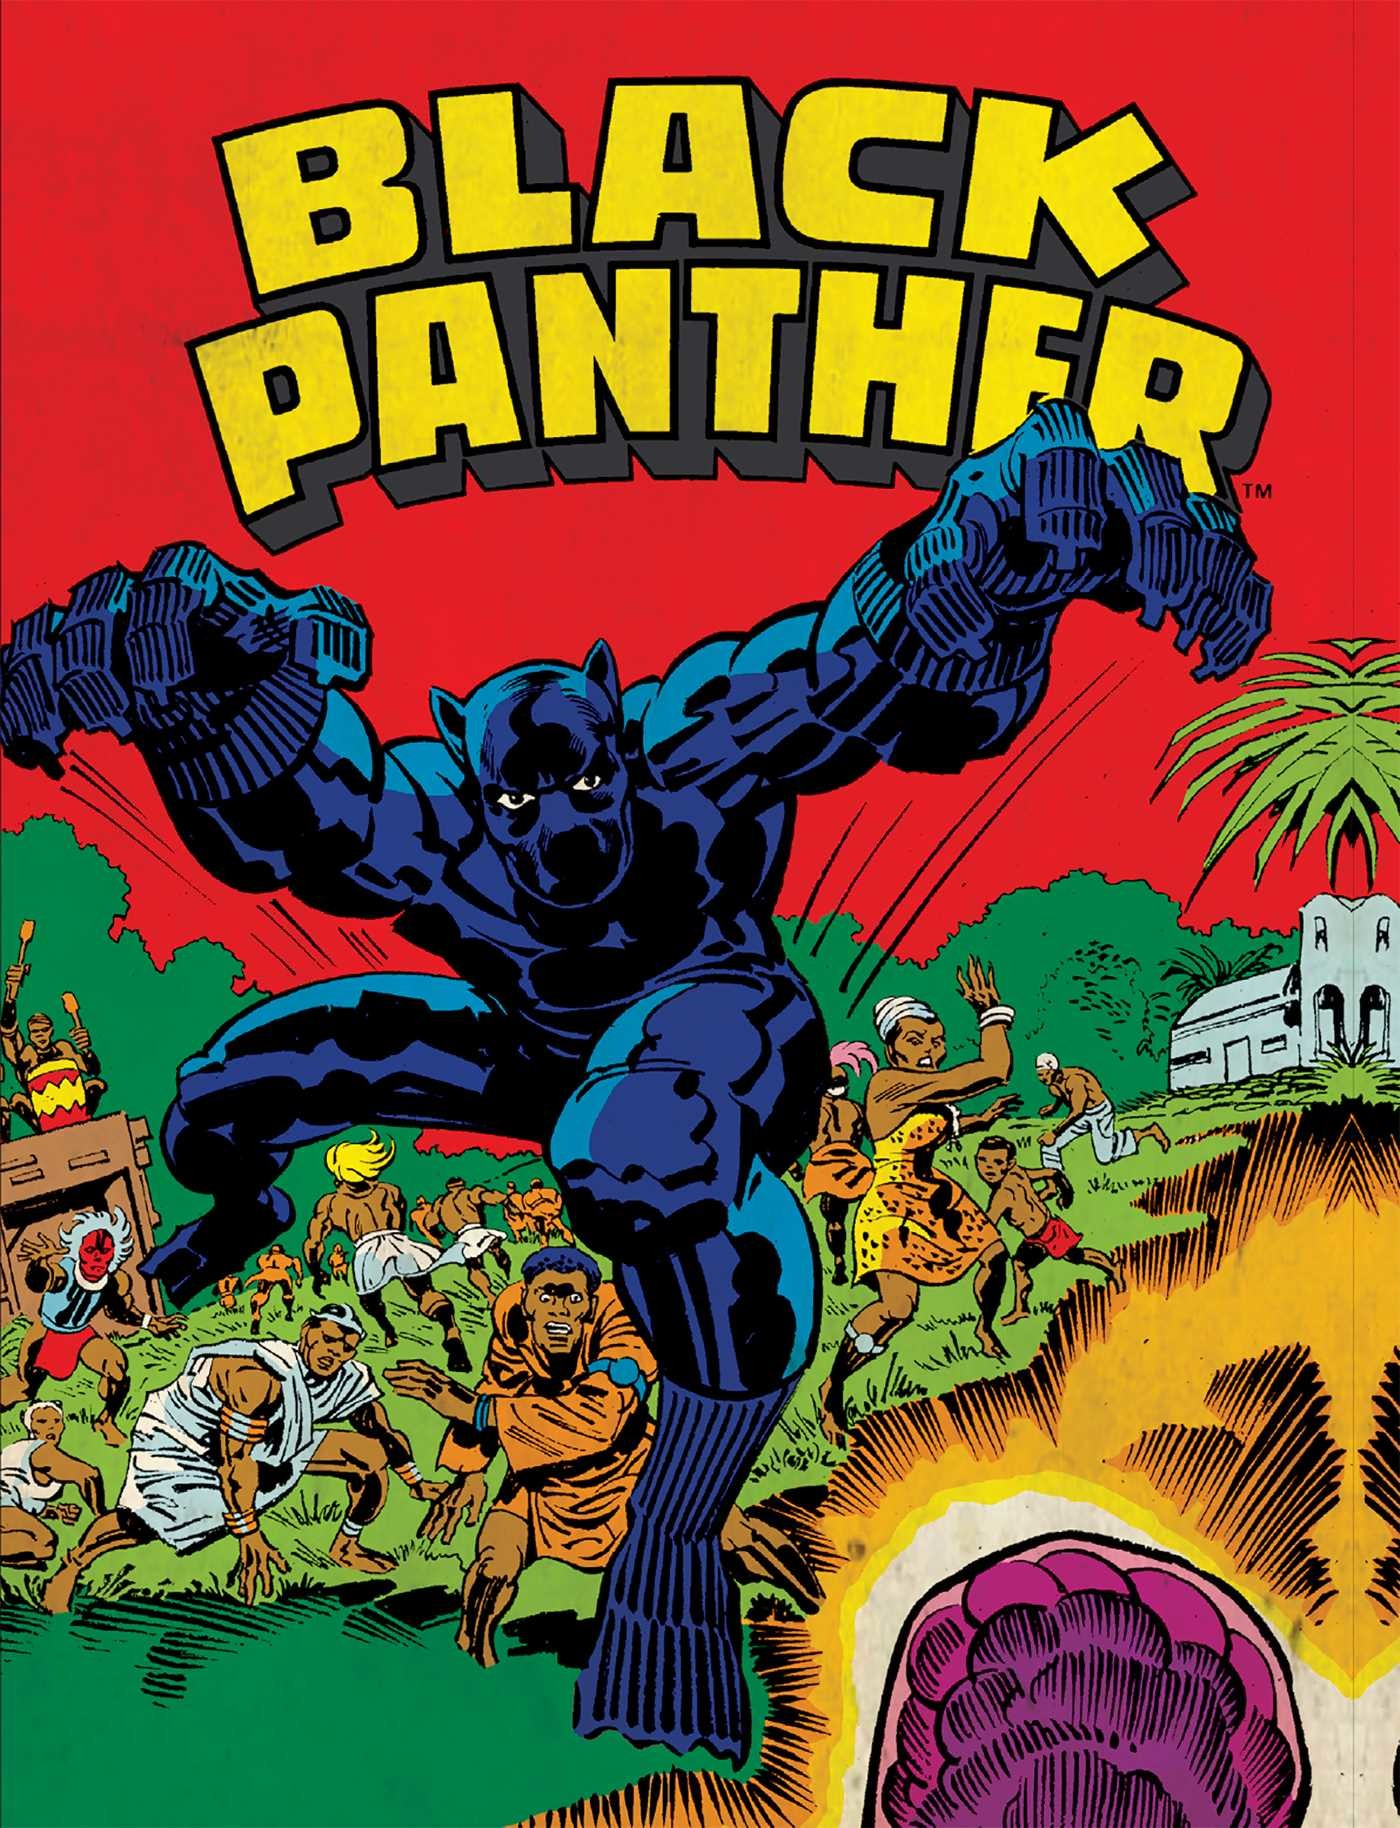 Marvel comics black panther deluxe note card set with keepsake book box 9781683833390.in04